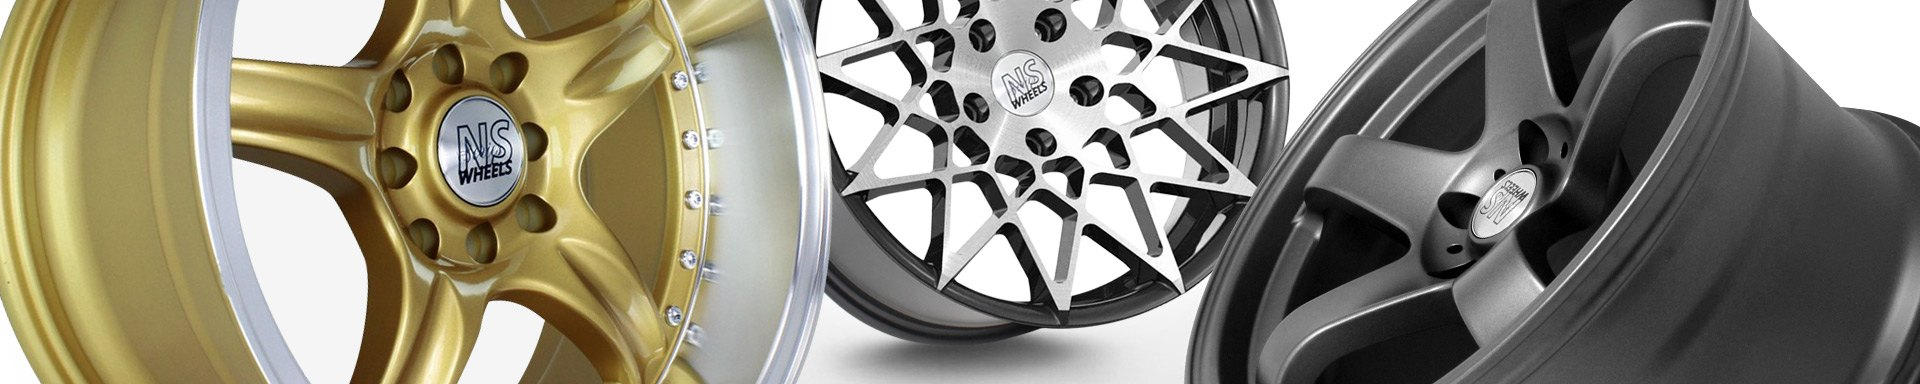 Universal NS SERIES WHEELS & RIMS